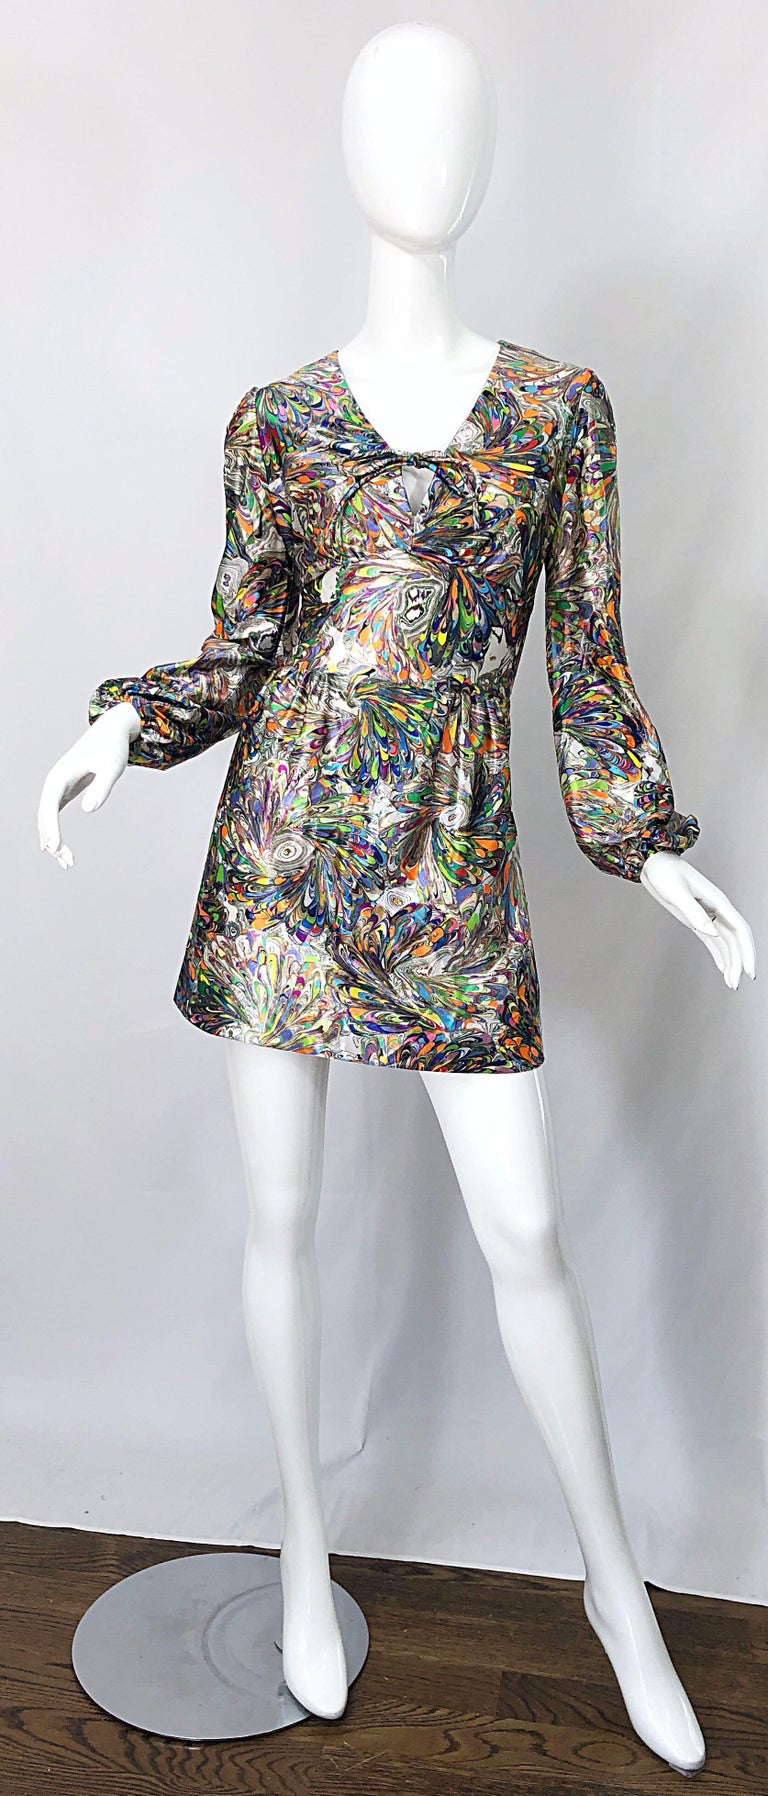 Amazing early 70 vibrant color mosaic swirl print bishop sleeve mini dress or tunic top ! Features a bright rainbow colors of purple, blue, neon green, orange, yellow, hot pink, and white throughout. Ties at center bust. Hidden zipper up the back